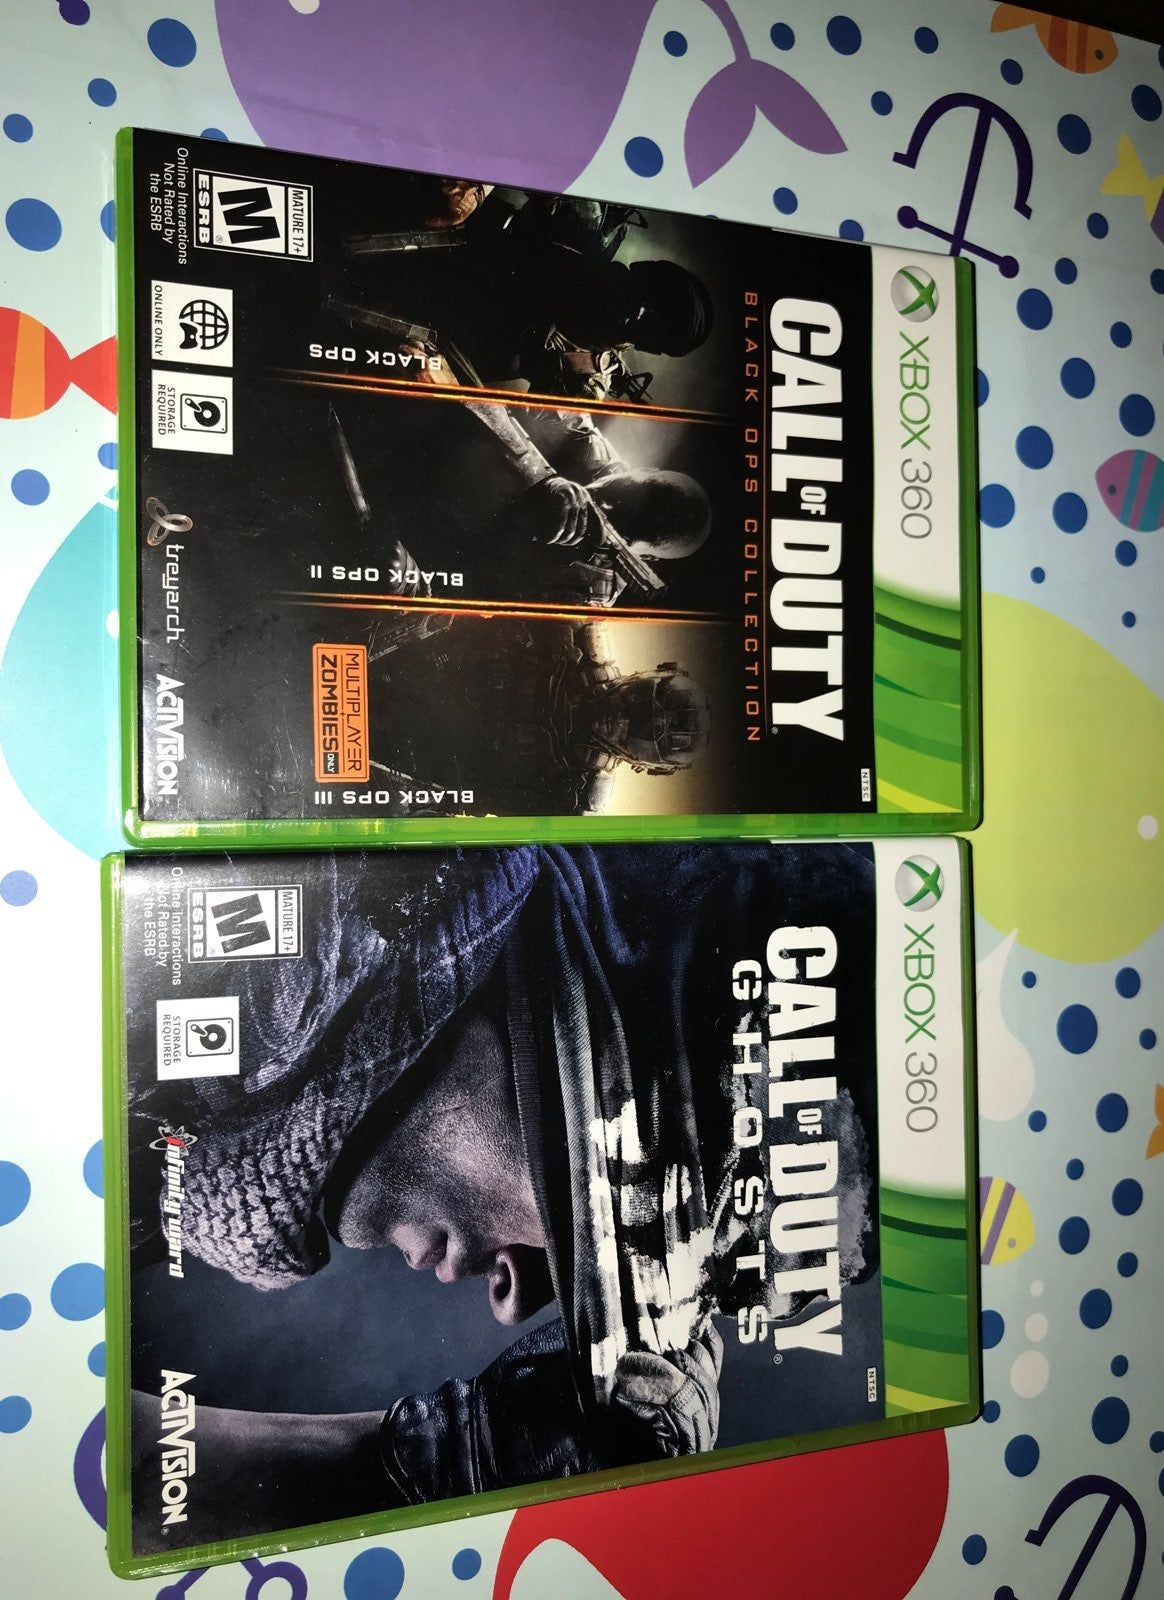 Check Out My Call Of Duty Black Ops 1 2 3 And Call Of Duty Ghost